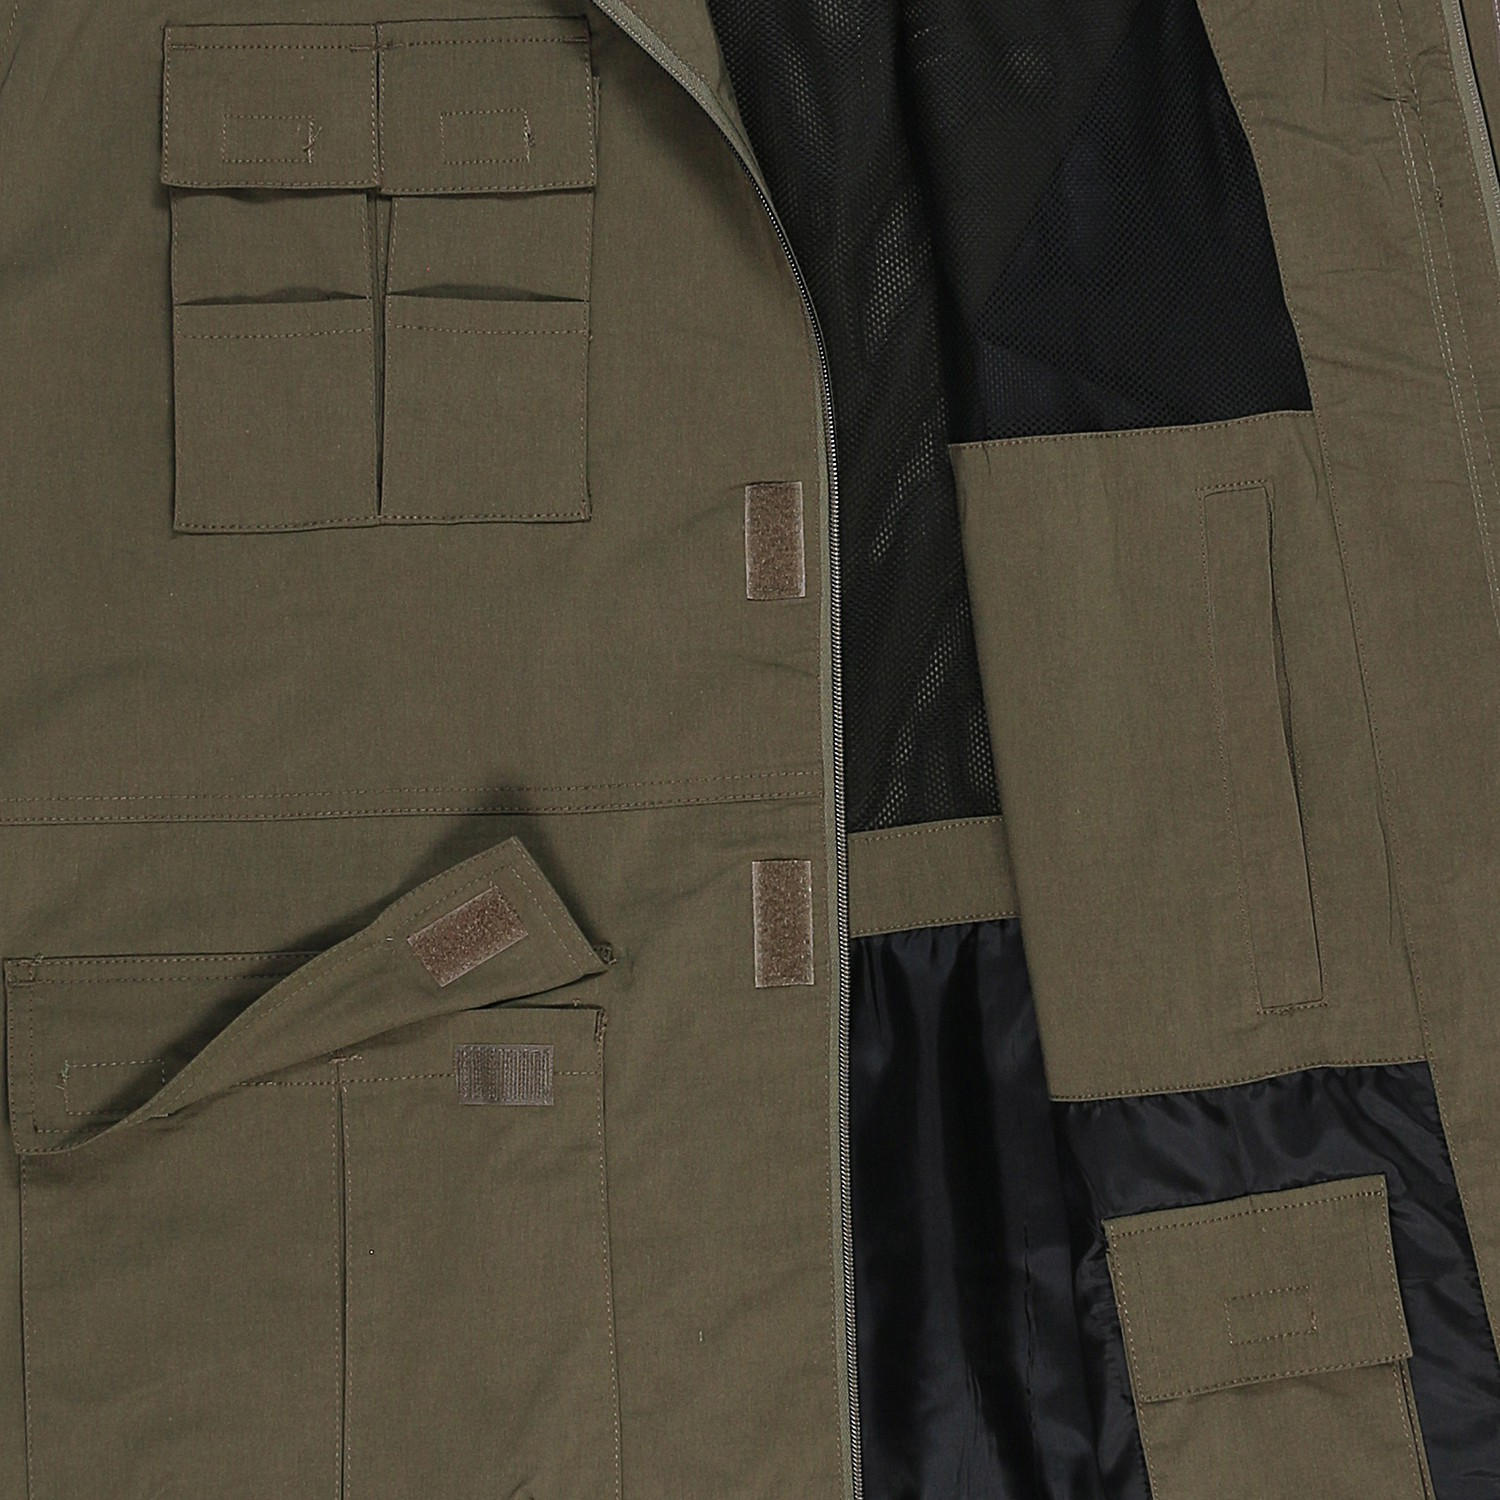 Detail Image to Outdoor vest in khaki by Abraxas in oversizes up to 10XL